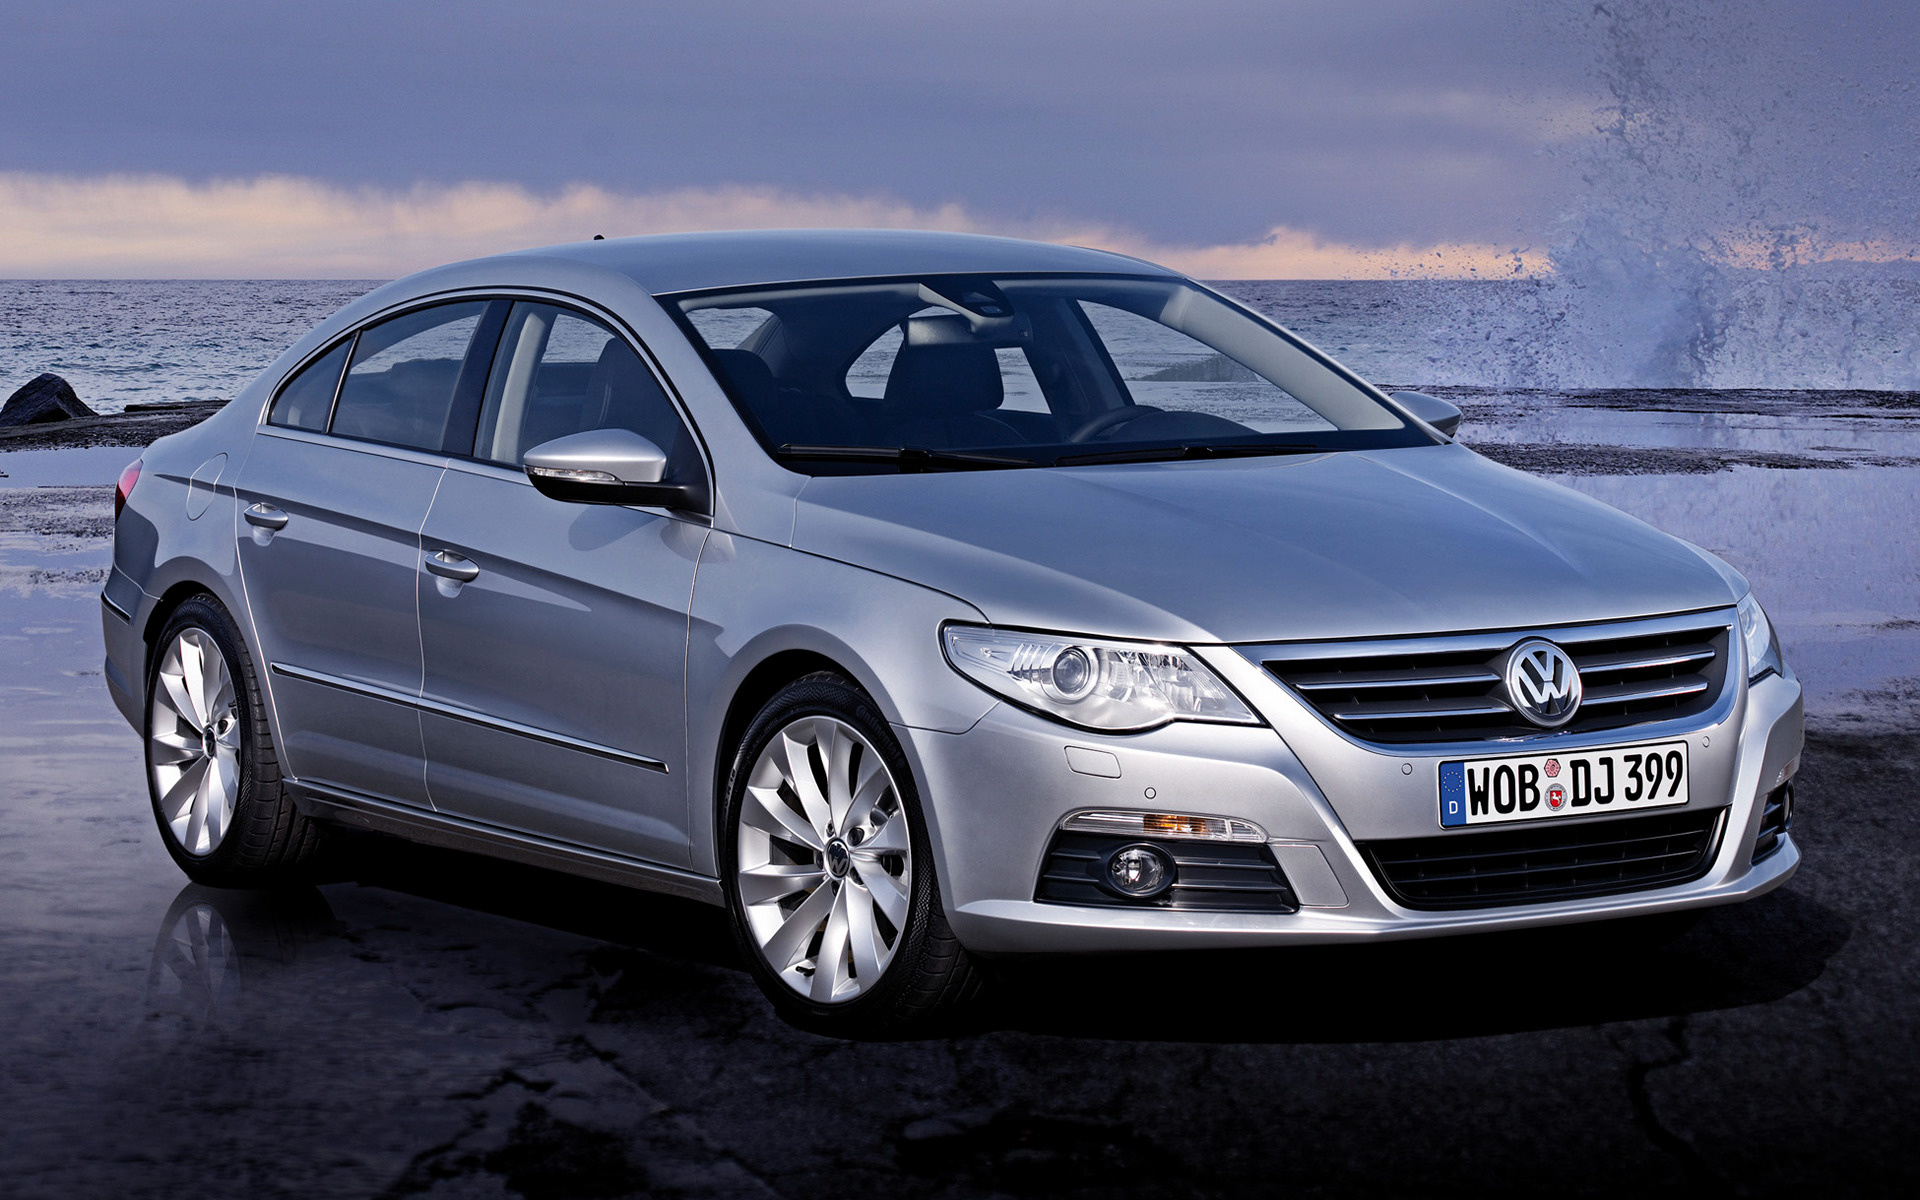 volkswagen passat cc 2008 wallpapers and hd images car pixel. Black Bedroom Furniture Sets. Home Design Ideas